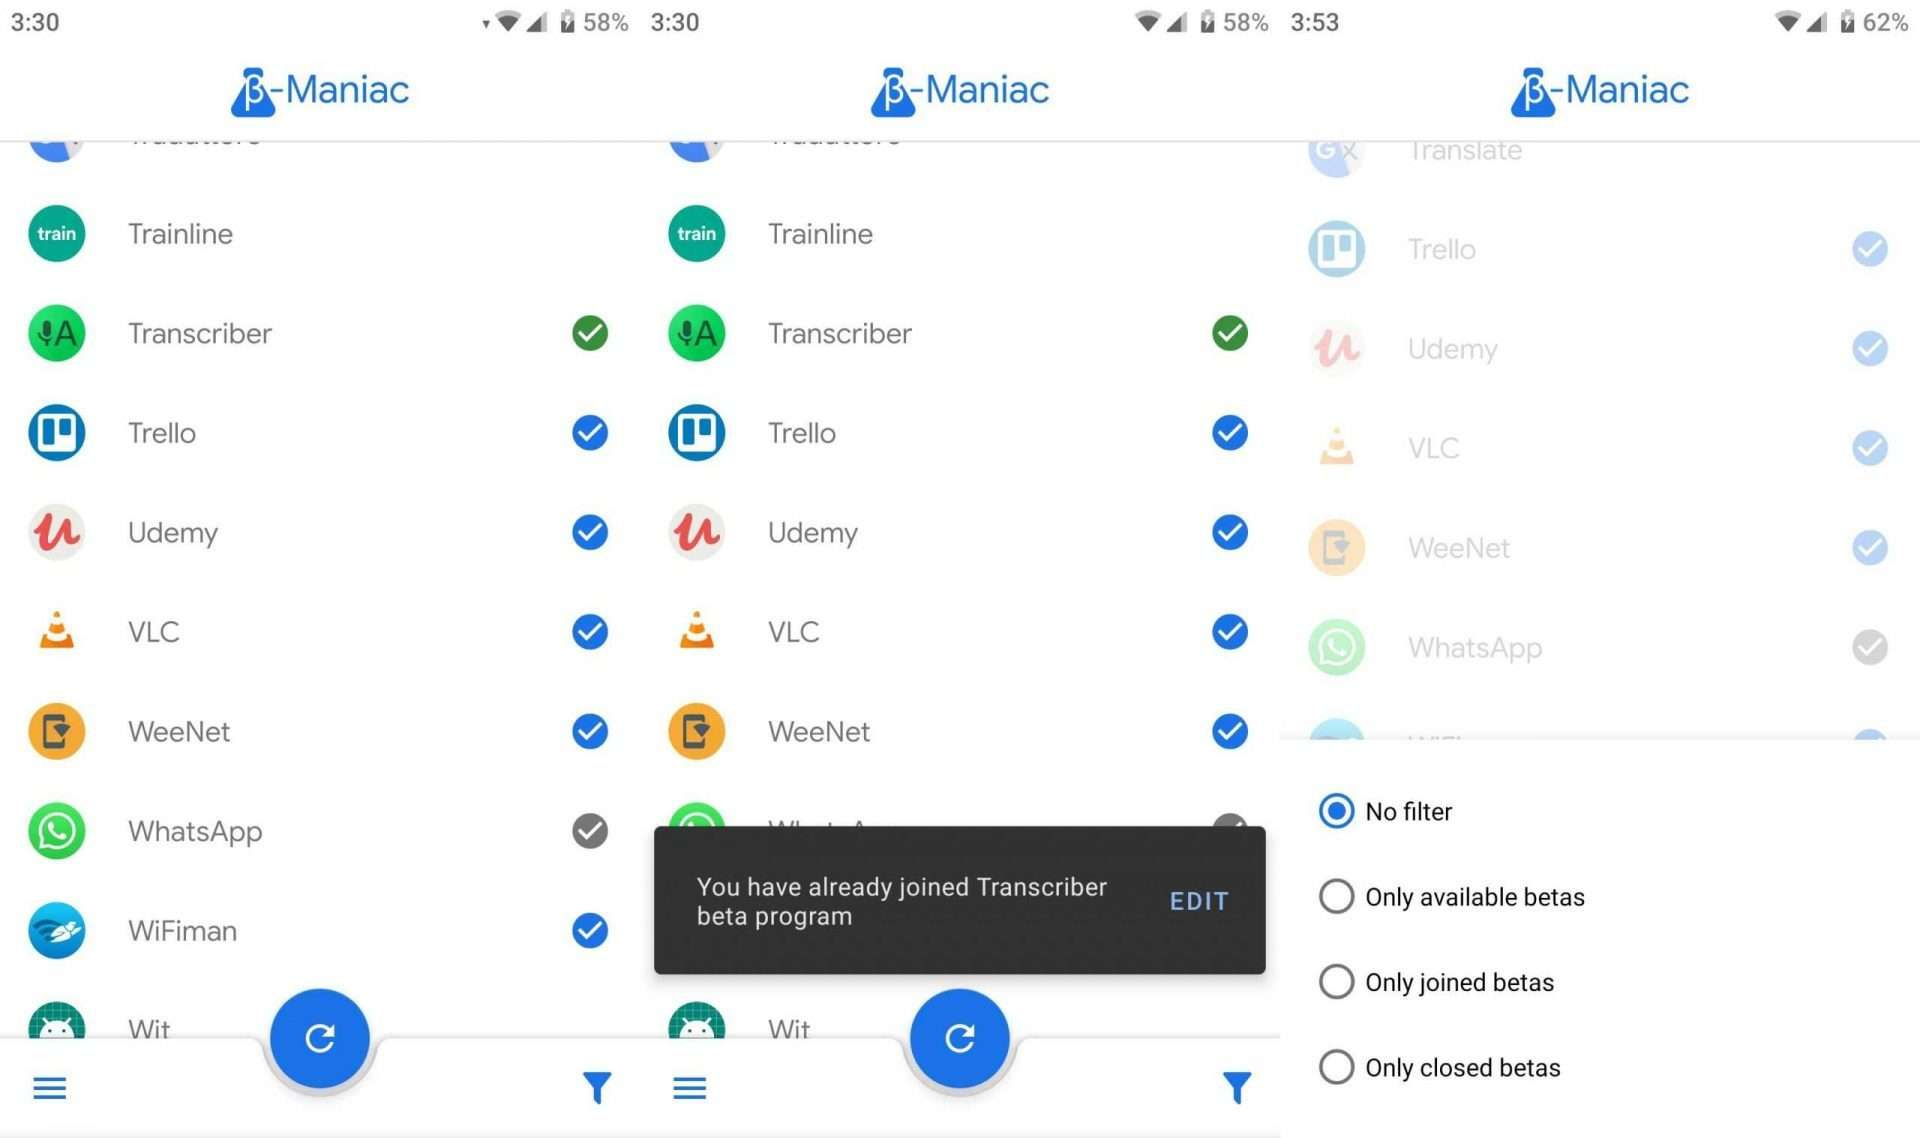 Beta Maniac - Best Android Apps (April 2020)